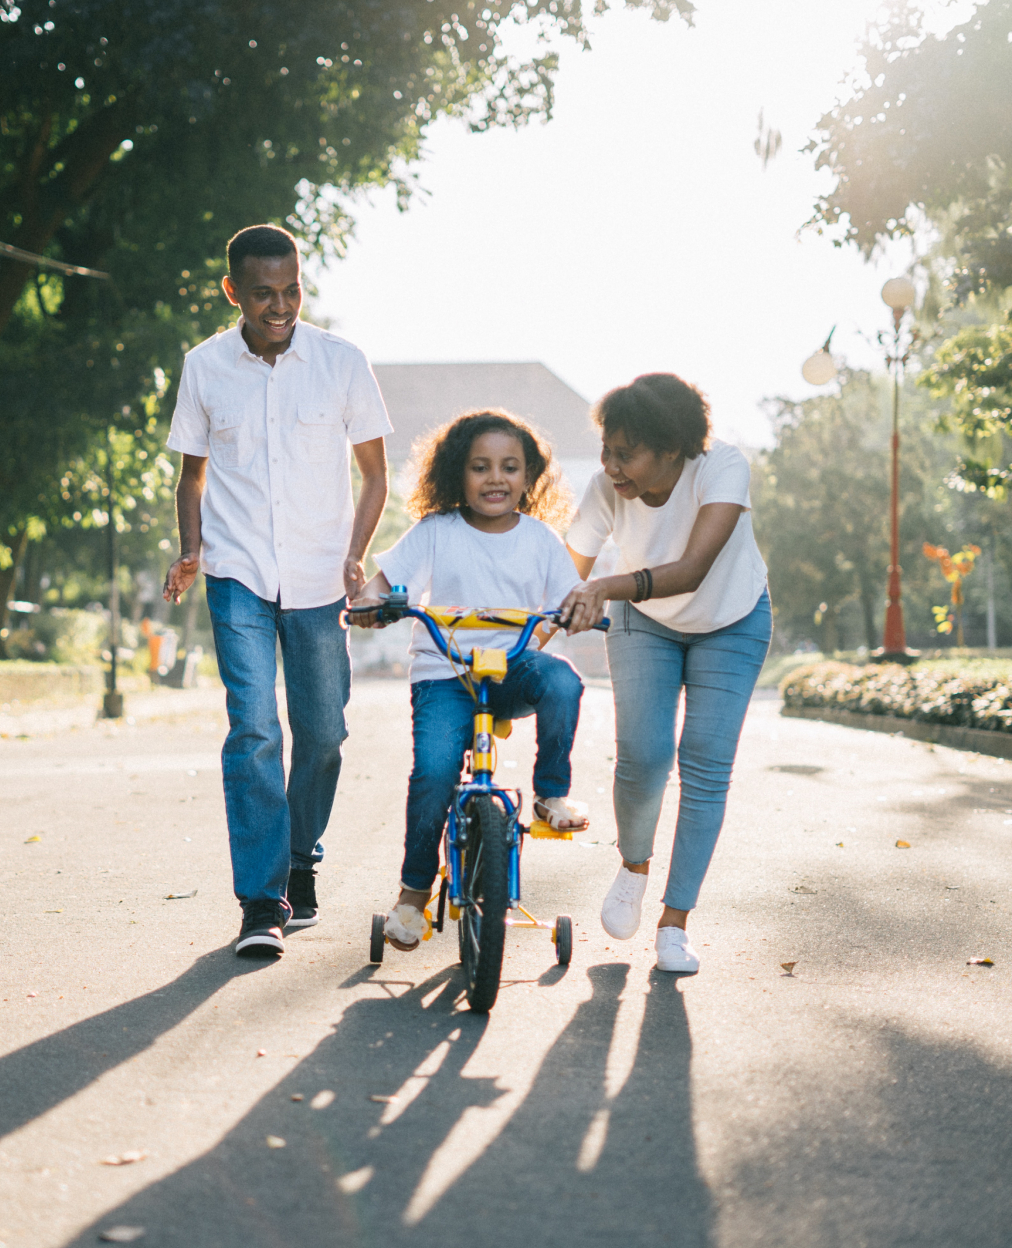 A photo of a young girl riding her bike outside in the street with her parents either side of her